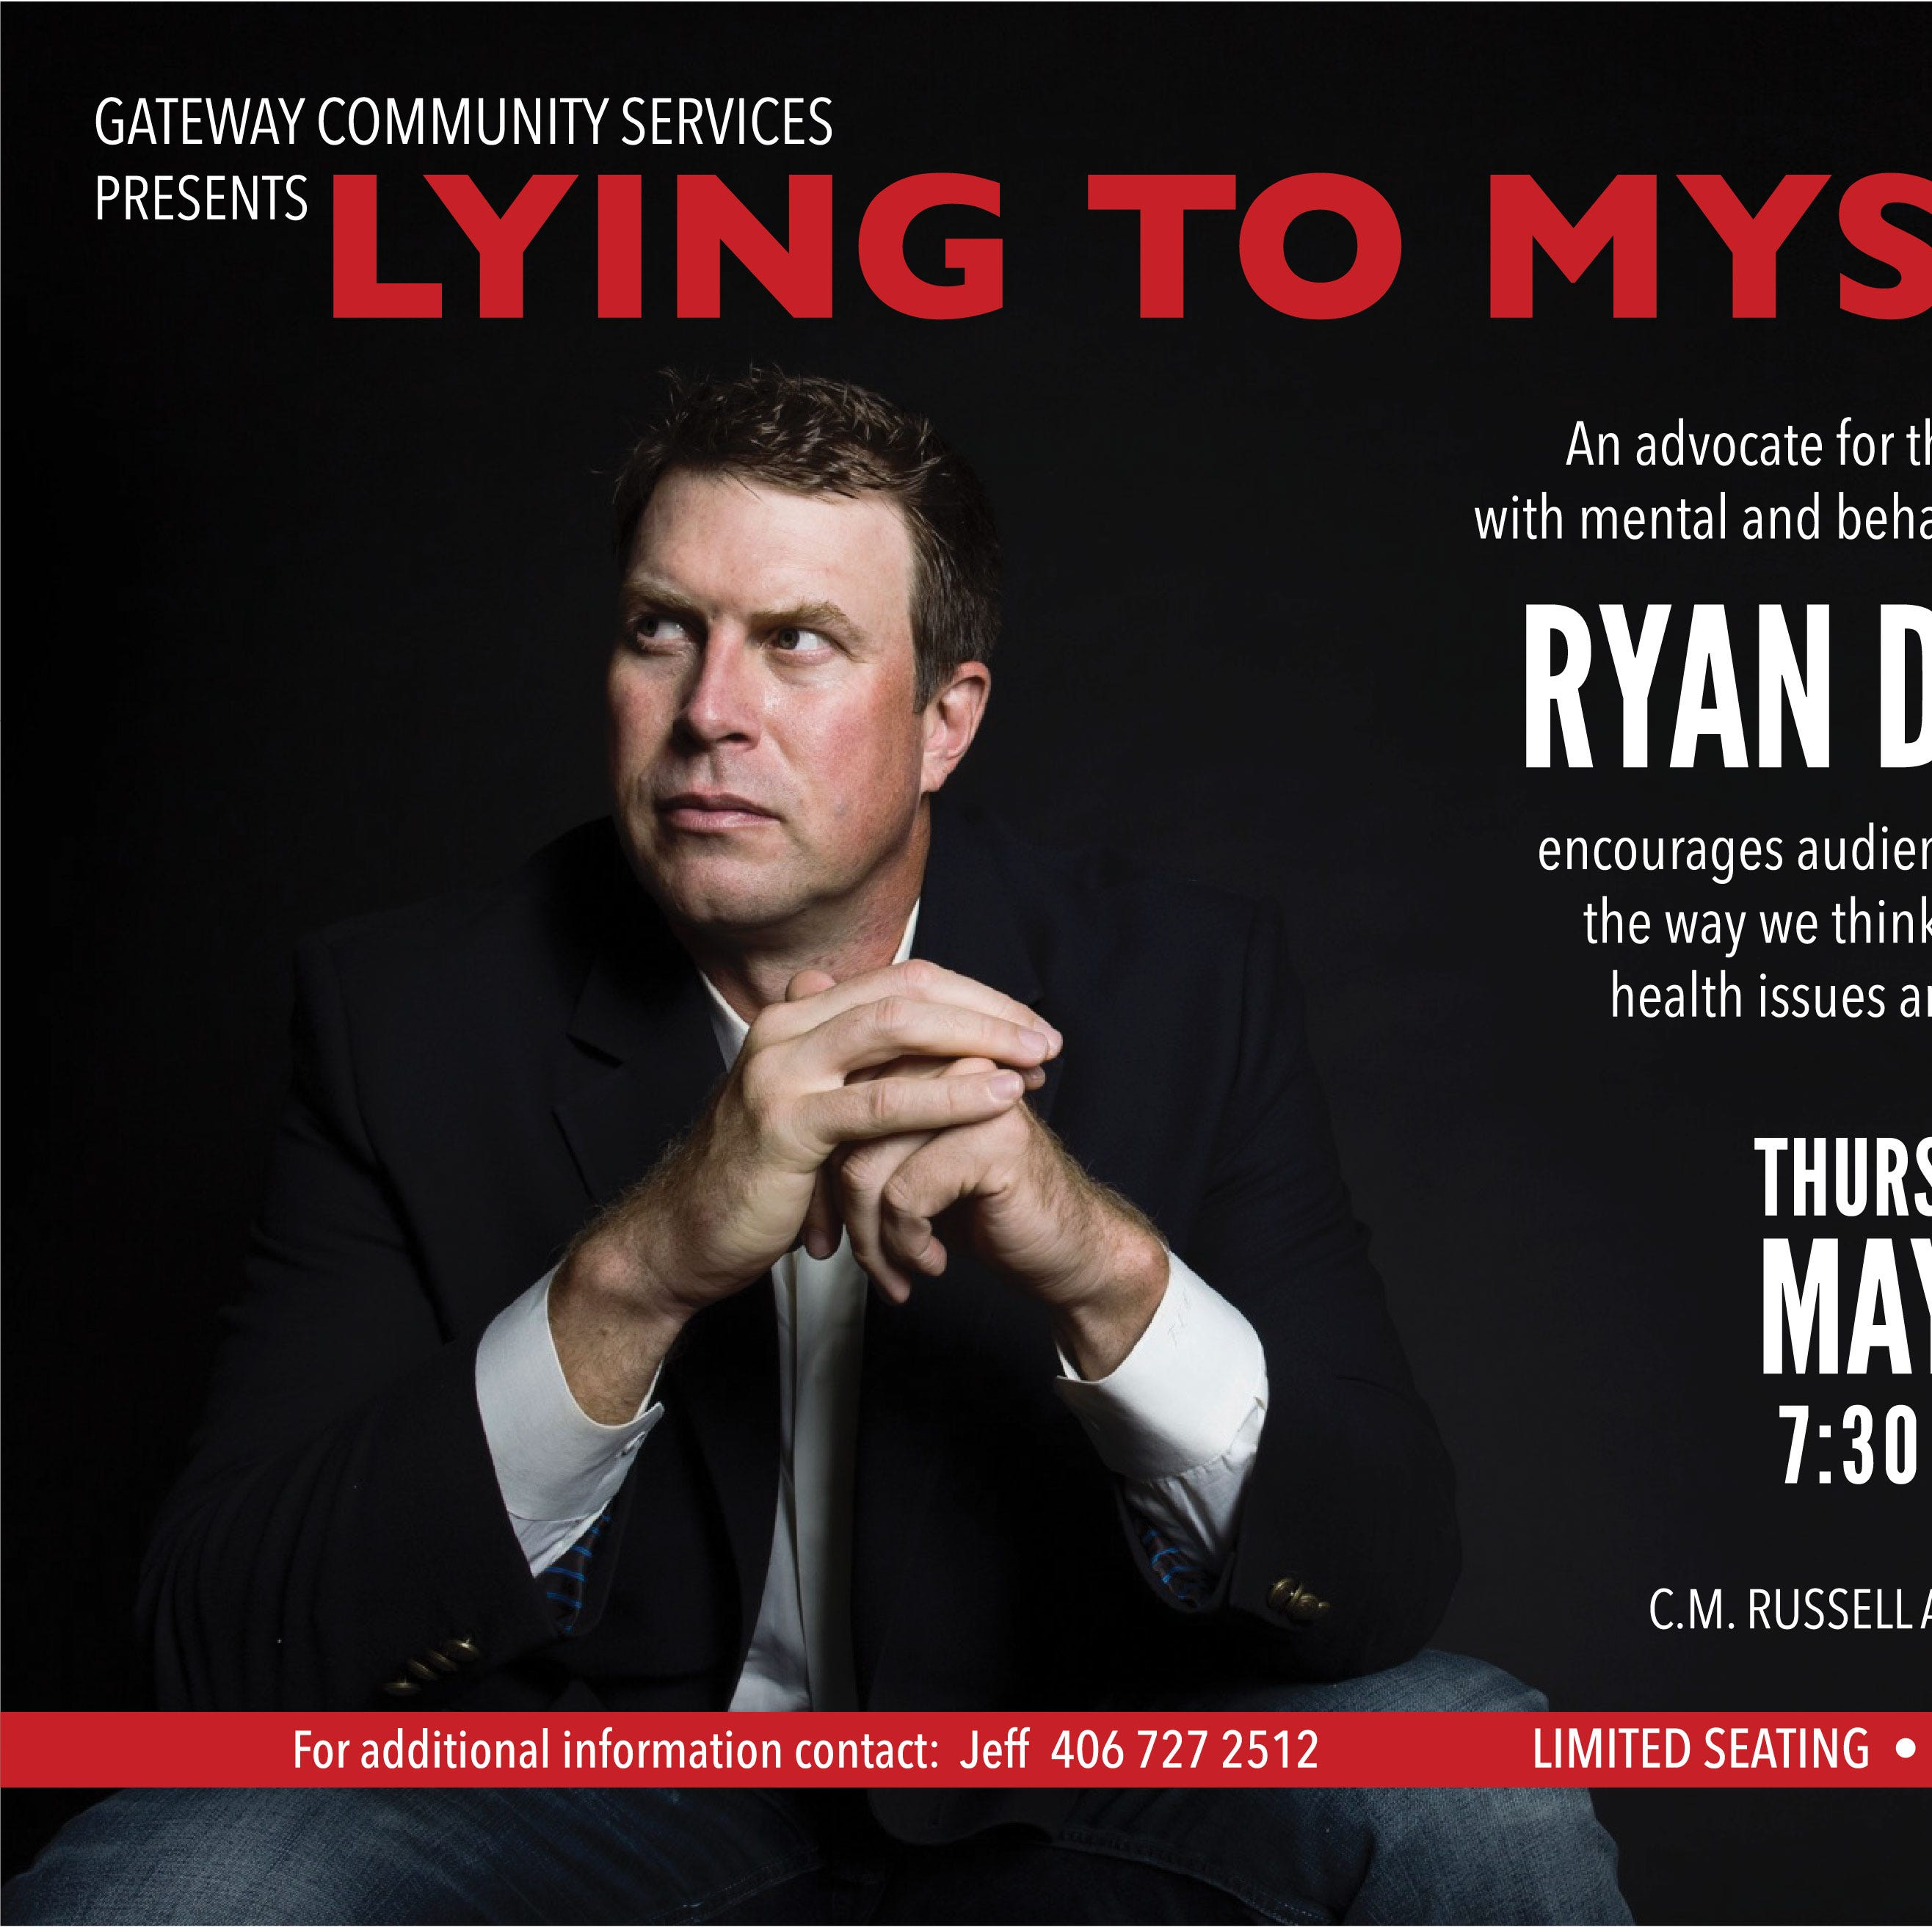 Ryan Leaf to speak at CMR in May on mental health, addiction issues